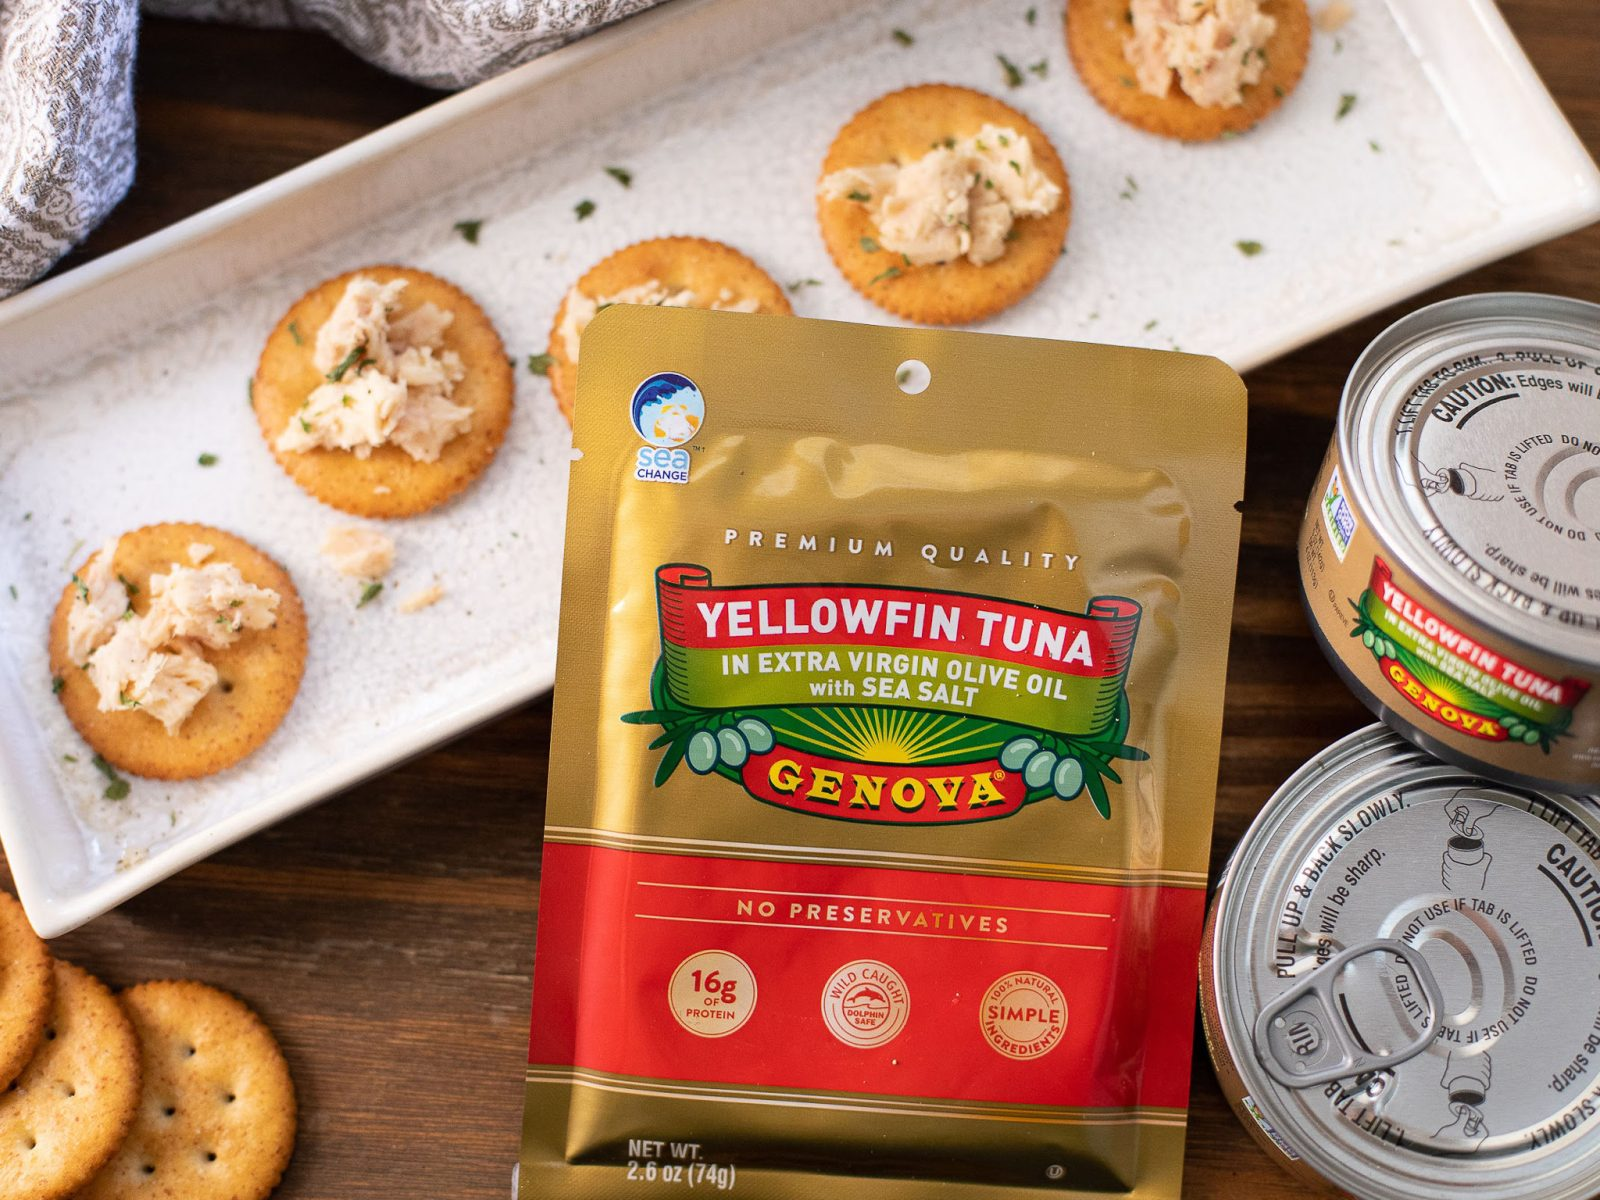 Genova Albacore or Yellowfin Tuna As Low As 94¢ At Publix on I Heart Publix